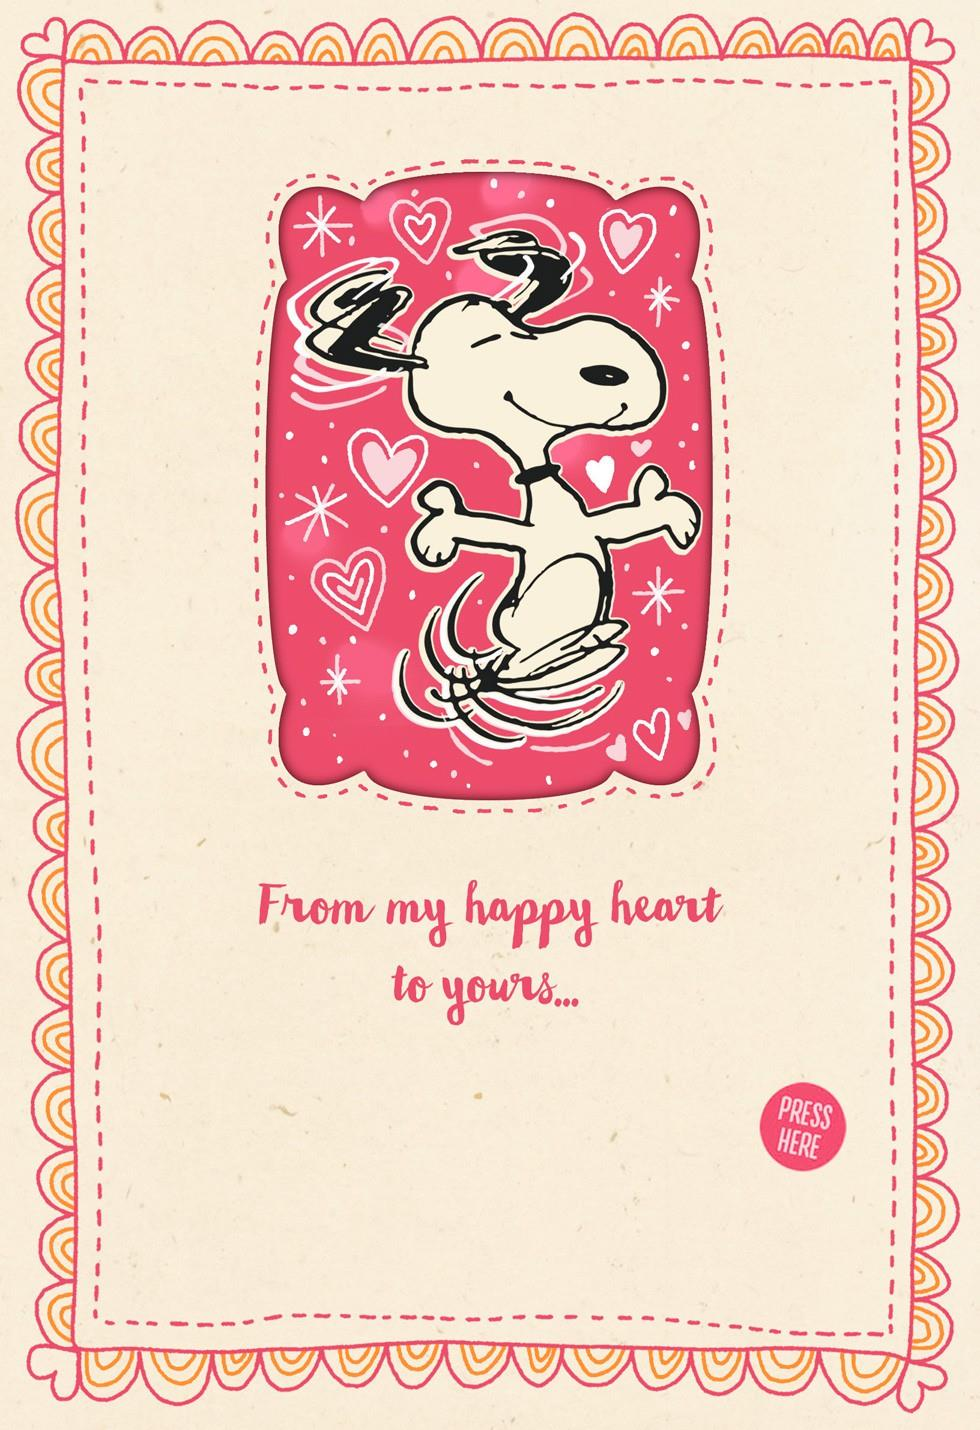 Snoopy Musical Valentine's Day Card With Light